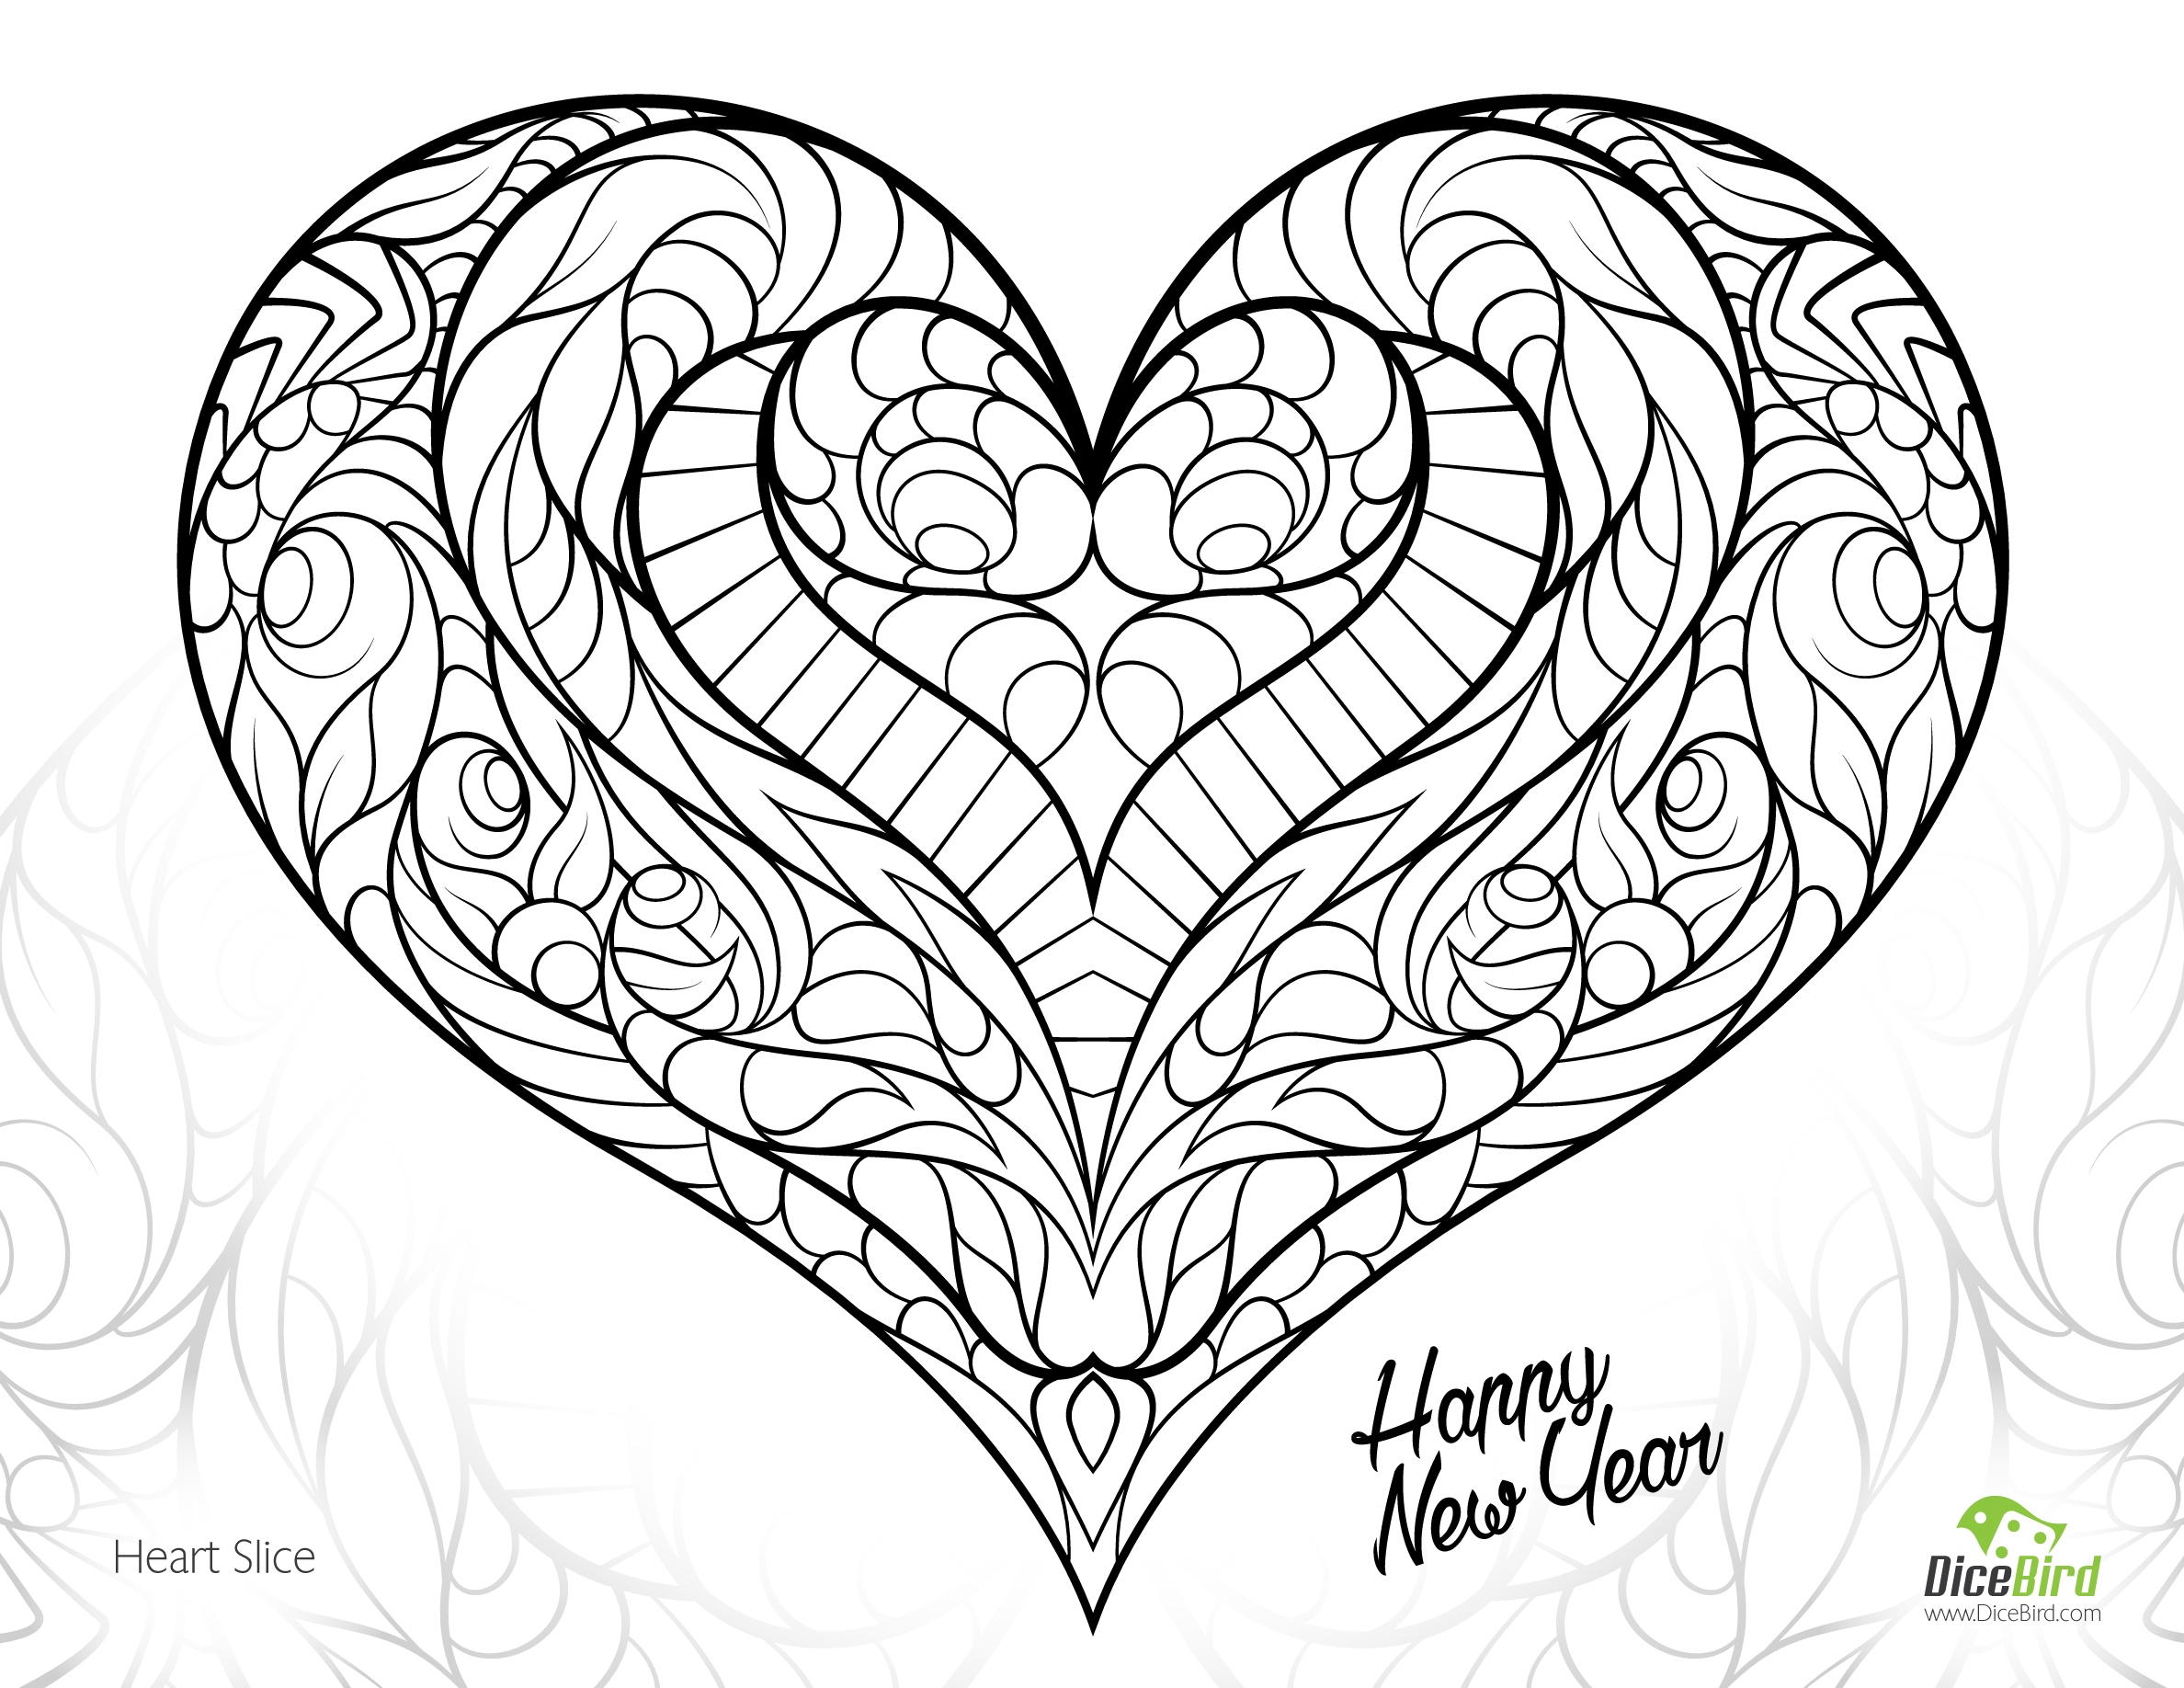 free heart coloring pages - heart slice free adult coloring pages printable